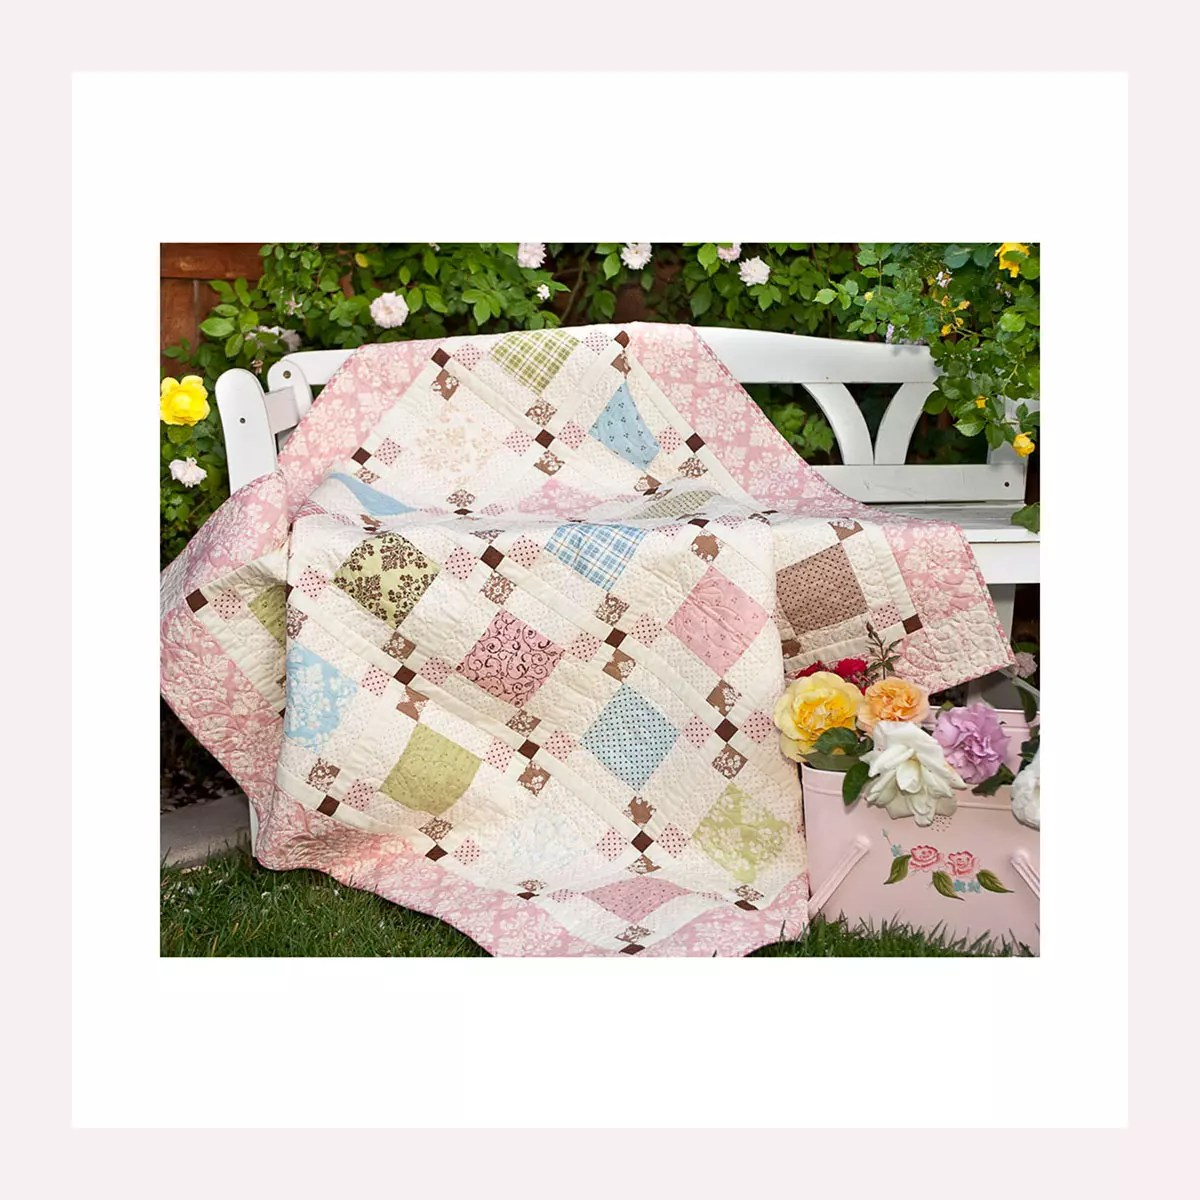 Pieced and Embroidery Quilts